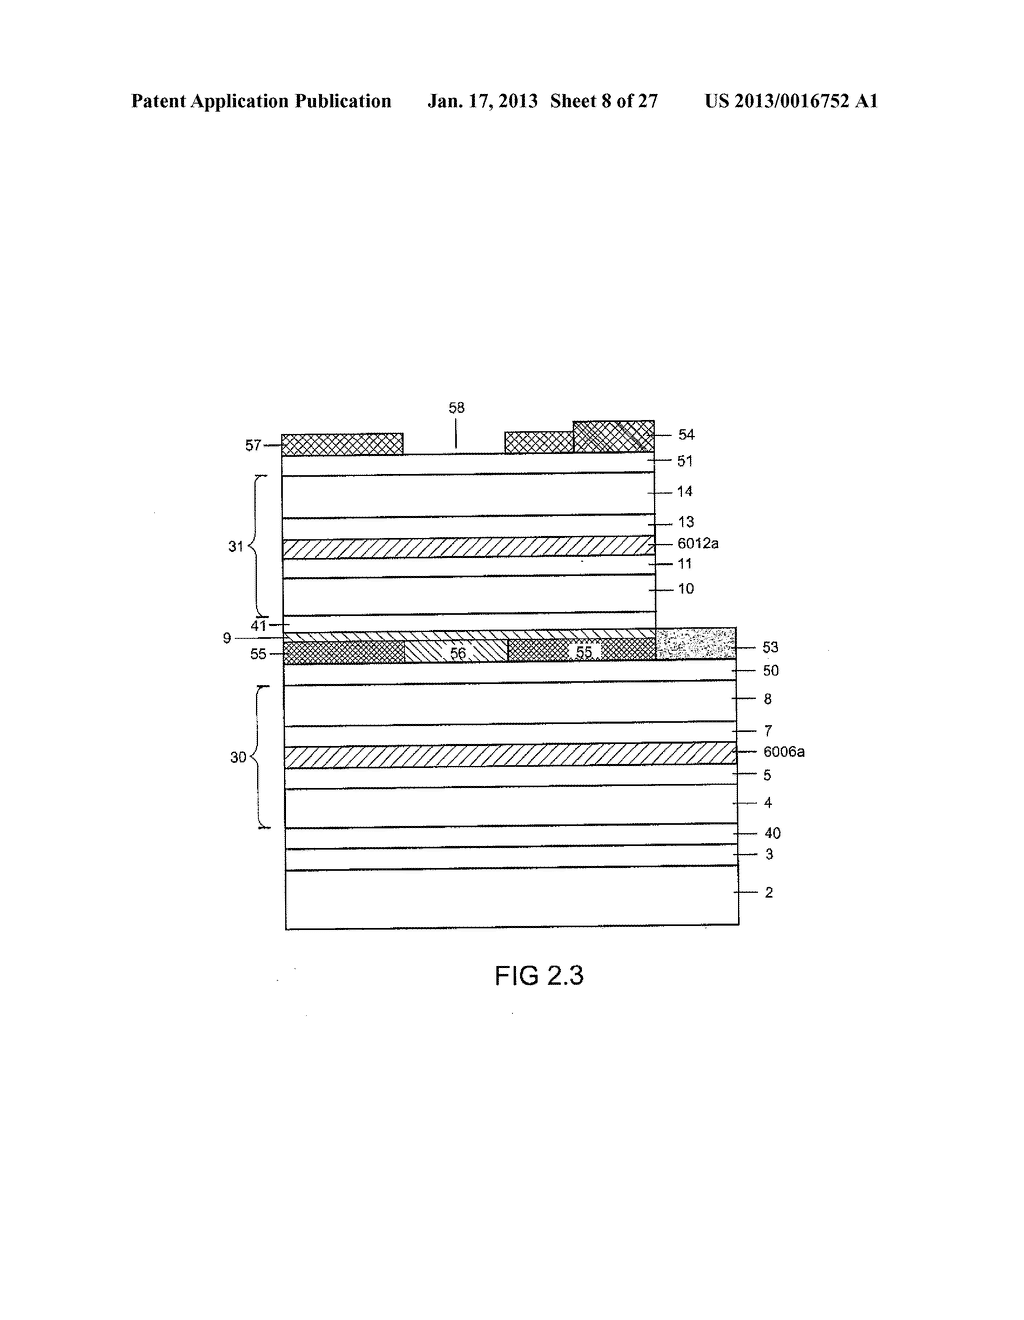 Laser Diode Assembly and Method for Producing a Laser Diode AssemblyAANM Lell; AlfredAACI Maxhutte-HaidhofAACO DEAAGP Lell; Alfred Maxhutte-Haidhof DEAANM Straussburg; MartinAACI DonaustaufAACO DEAAGP Straussburg; Martin Donaustauf DE - diagram, schematic, and image 09